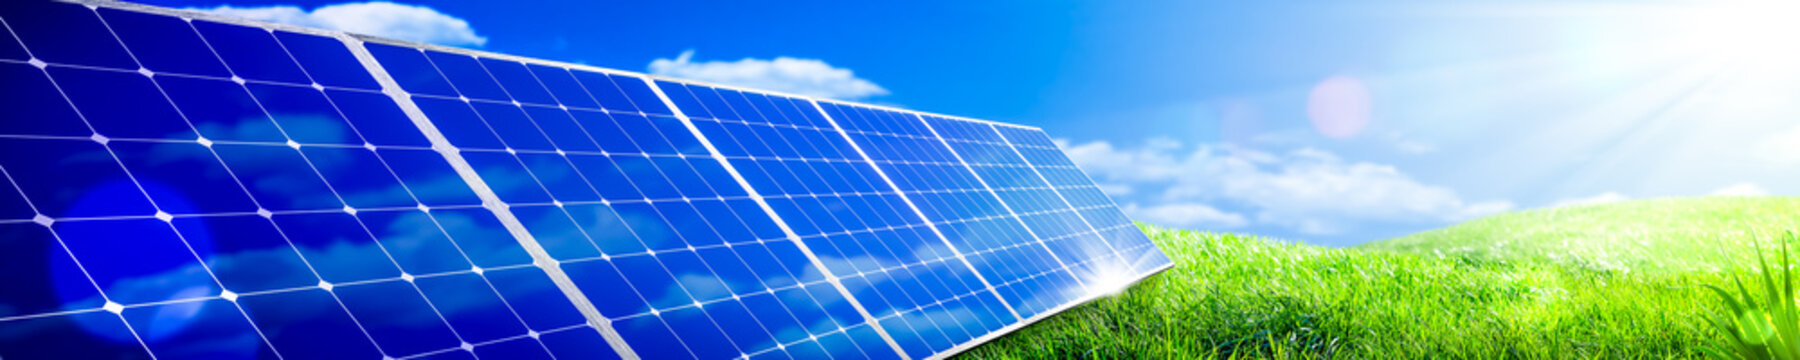 Banner Of Solar Panels In Green Grass Landscape With Blue Sky And Sunlight - Clean Energy Concept